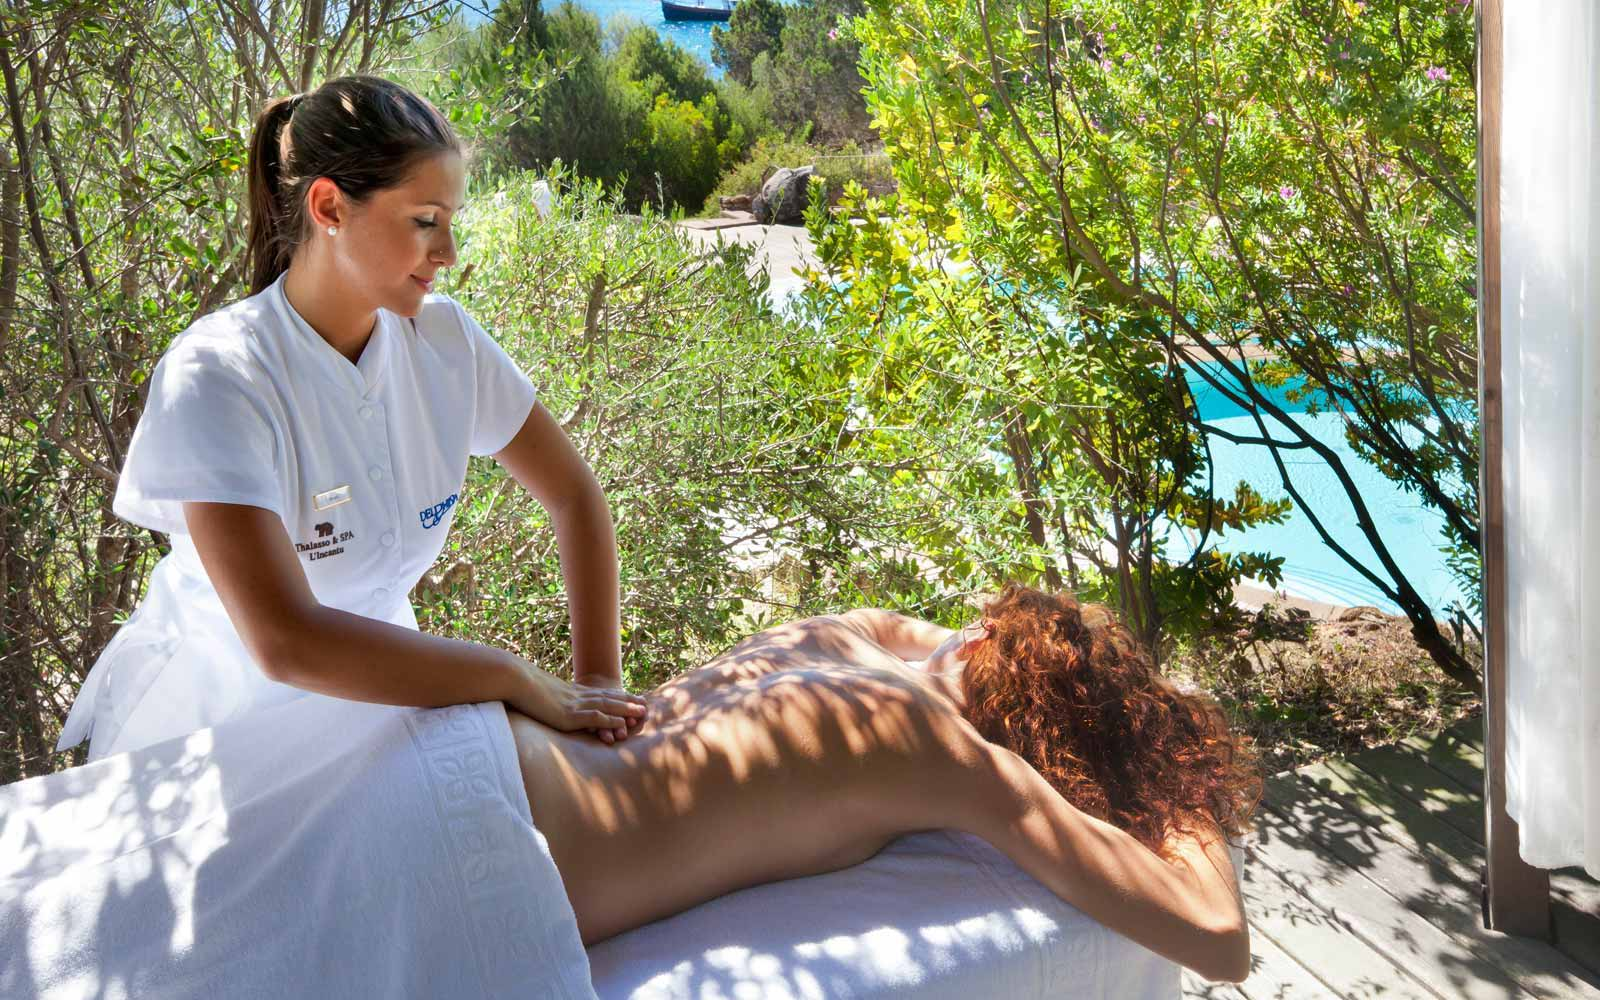 Massage treatment at Hotel Capo d'Orso